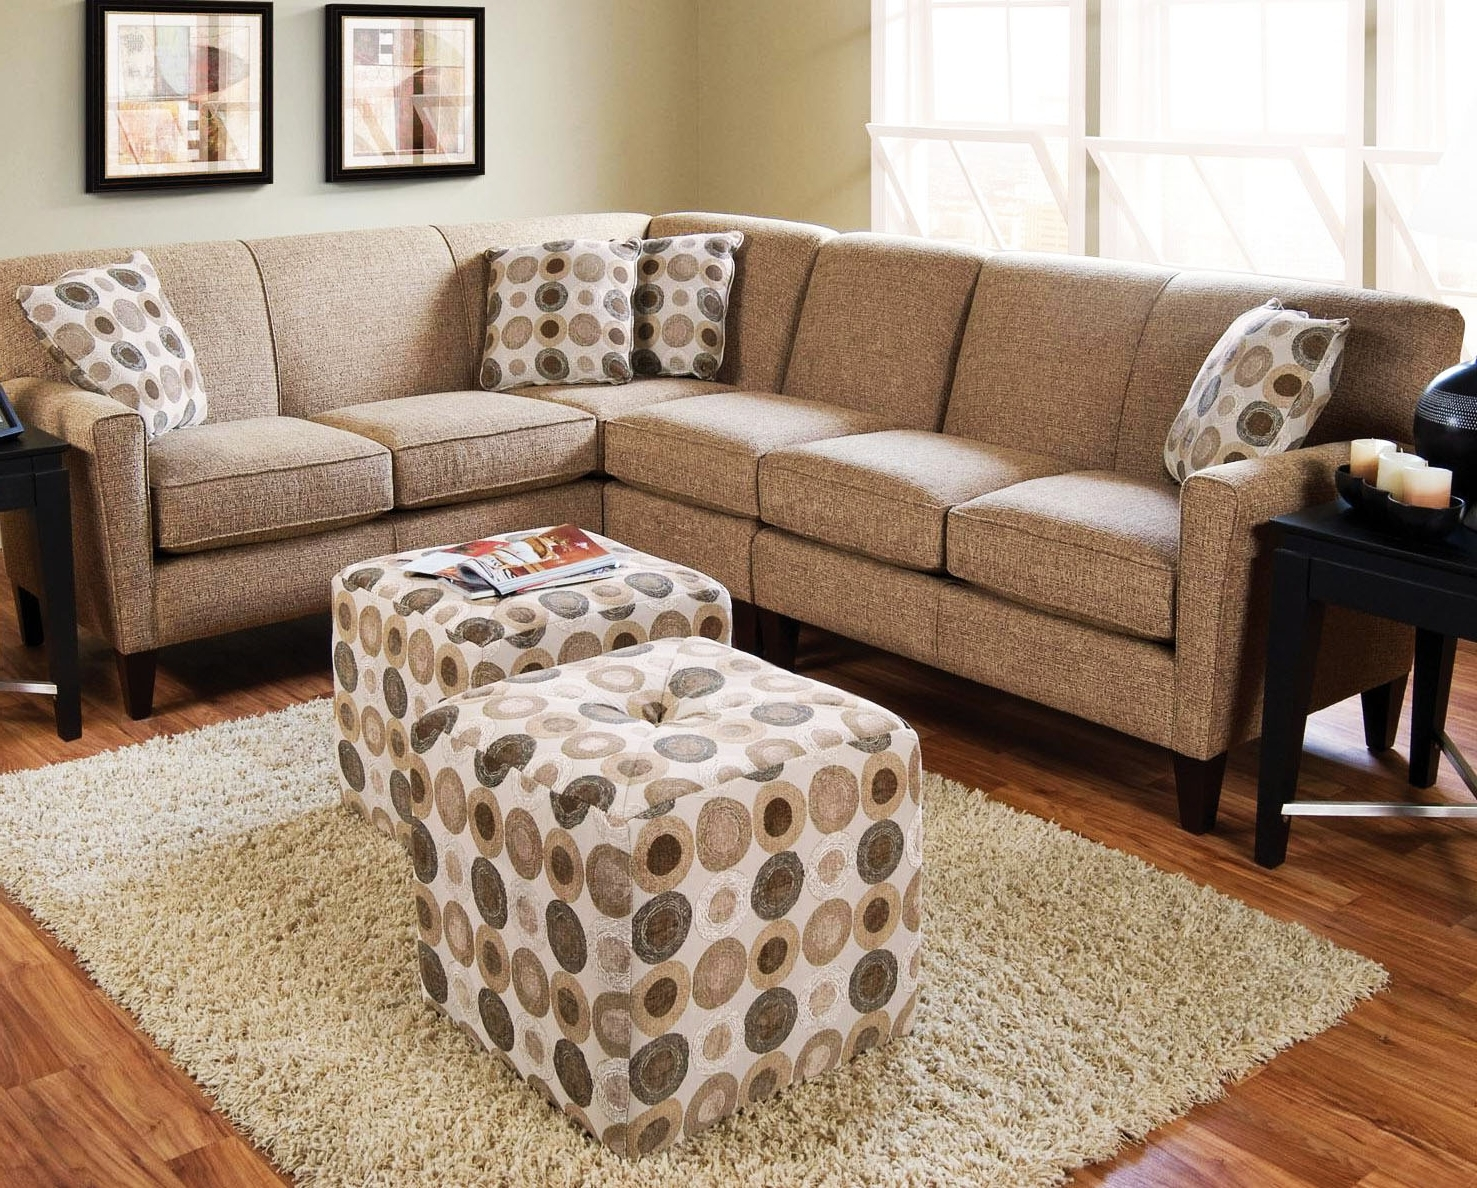 Sofa : Recliner Loveseat Small Sofa Bed With Storage Sleeper In Widely Used Sectional Sofas For Small Spaces With Recliners (View 17 of 20)